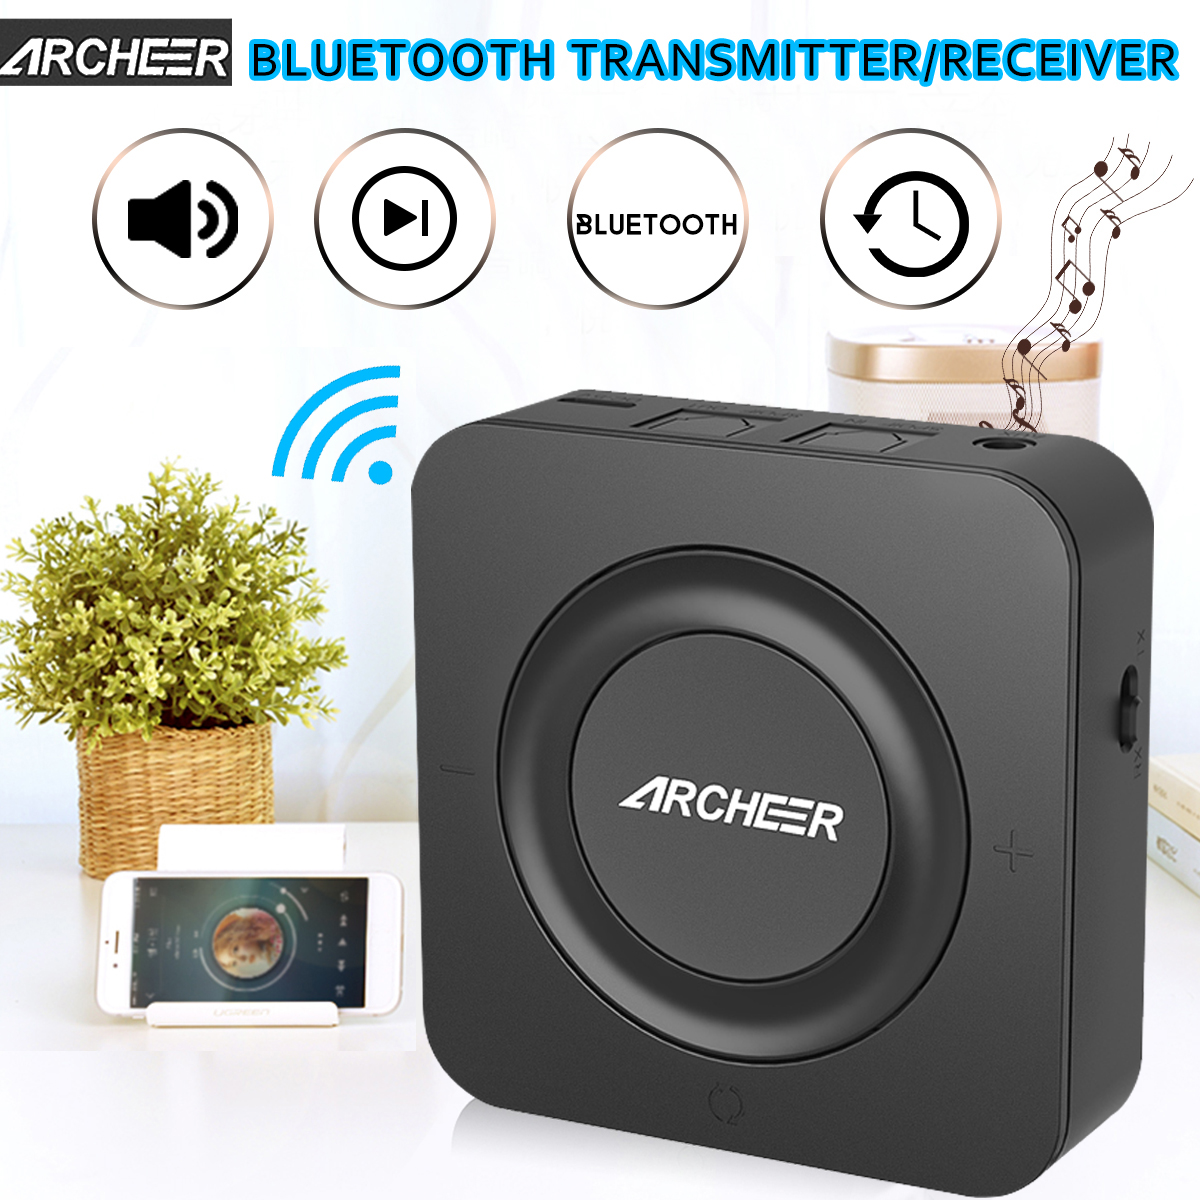 ARCHEER 2 in 1 bluetooth Transmitter Receiver, Digital Optical TOSLINK (SPDIF), Pair 2 At Once, Aptx Low Latency, 3.5mm (AUX and RCA) Wireless Audio Adapter for TV